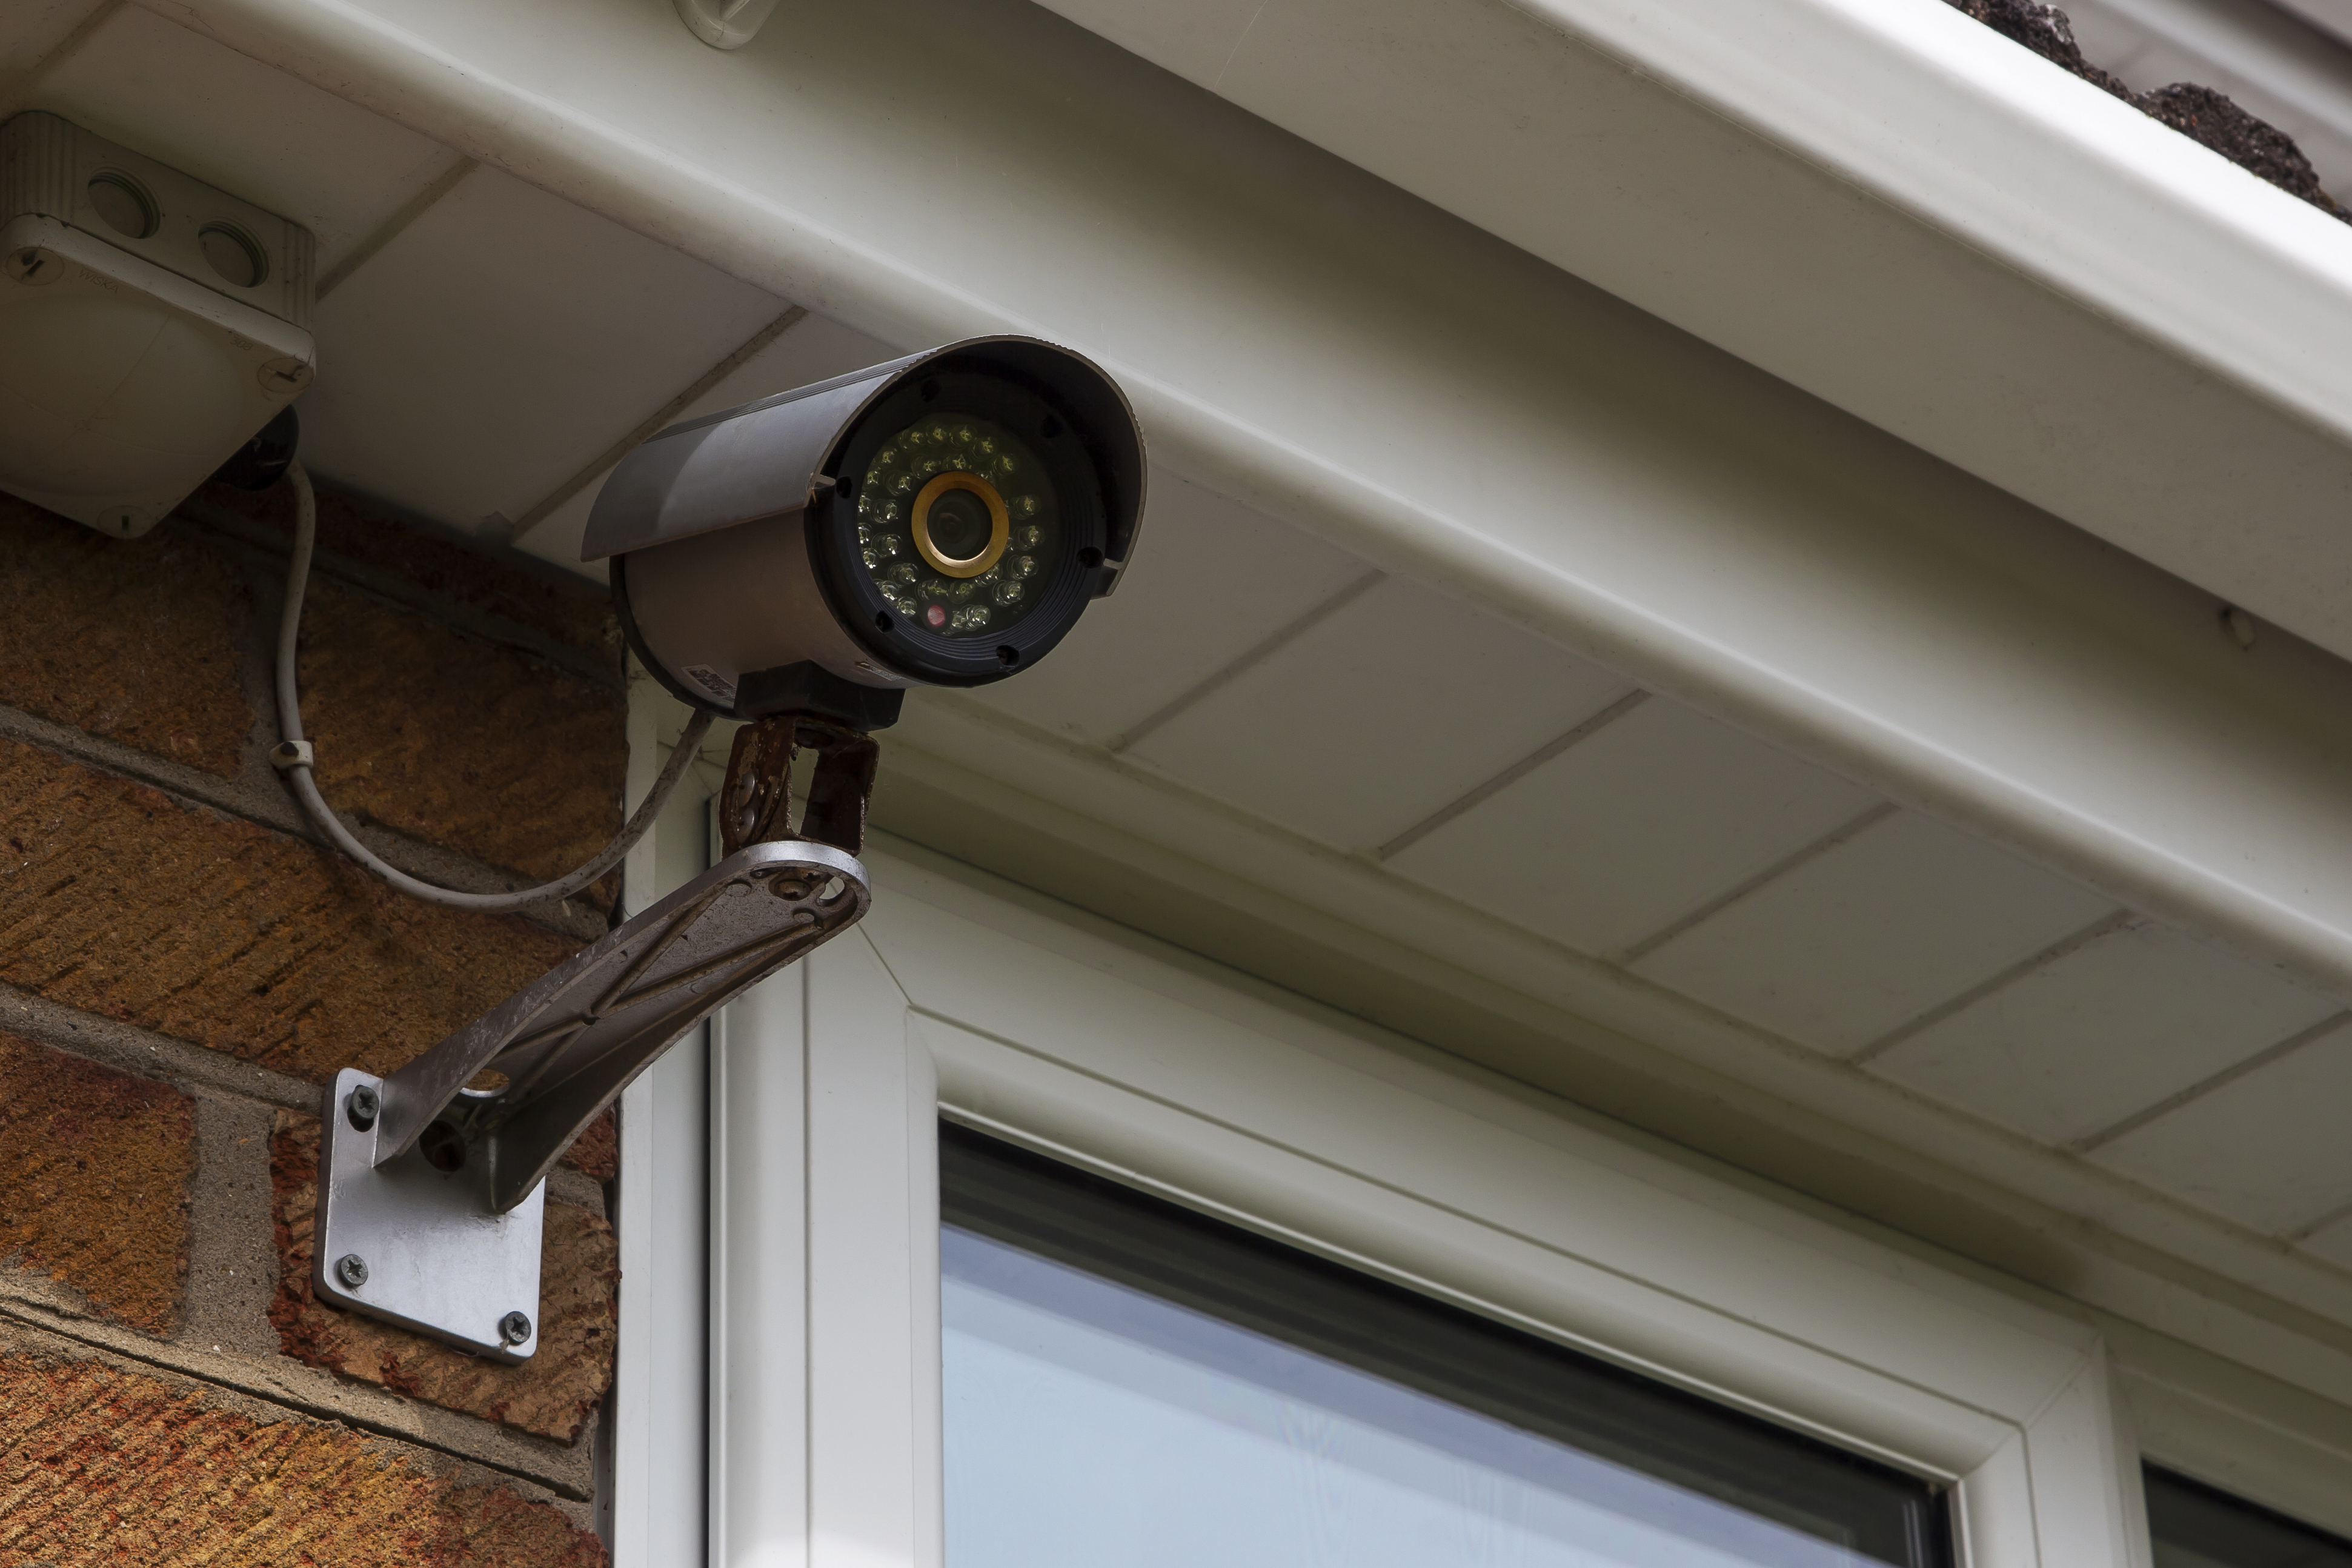 Beneficial Reasons to Maintain Your Home Security System